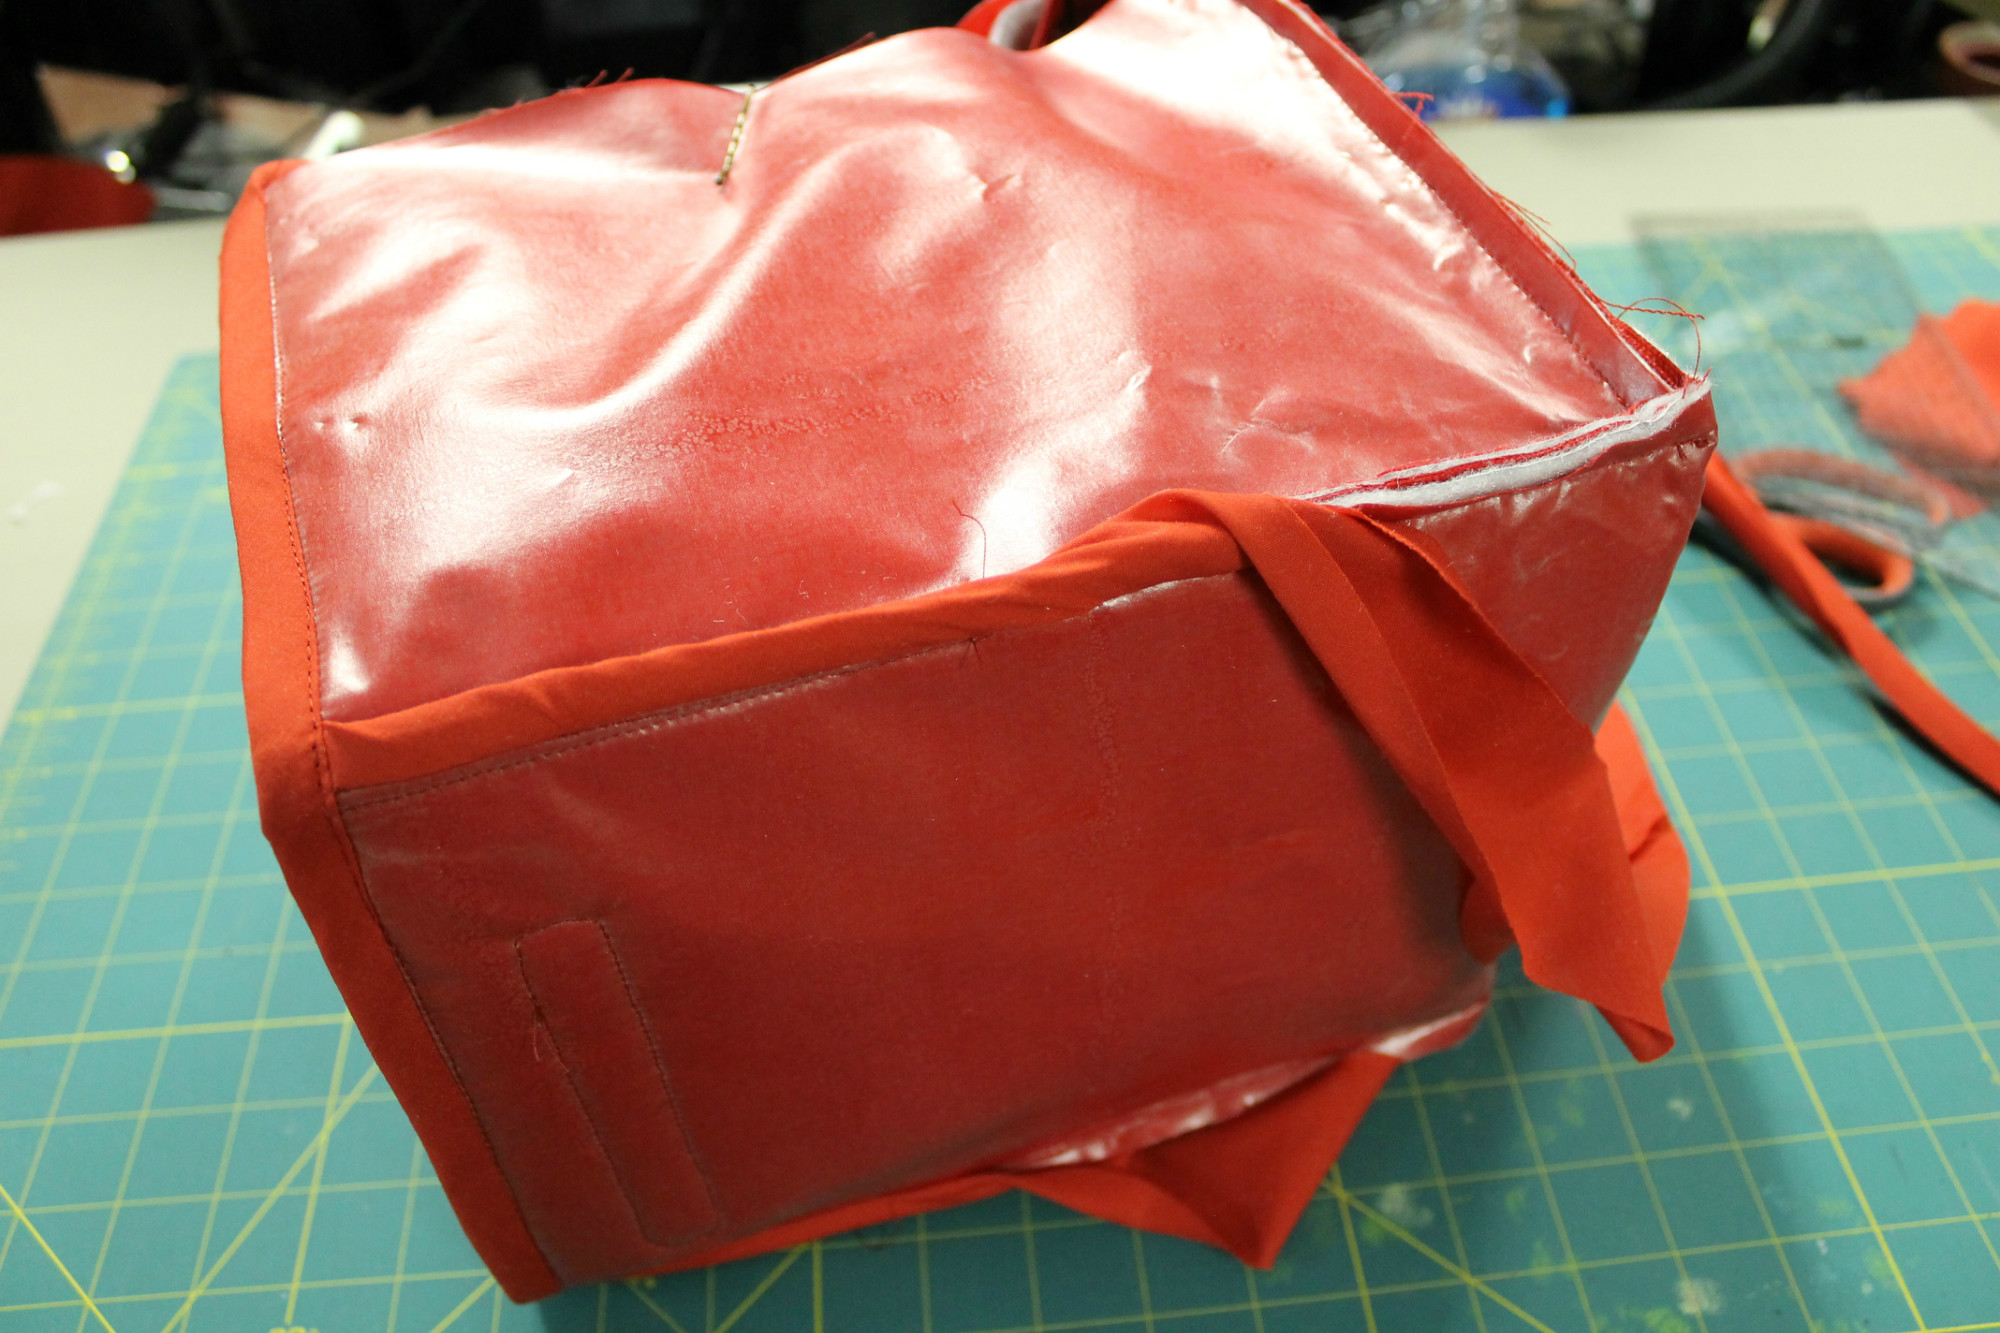 Binding the inside seams